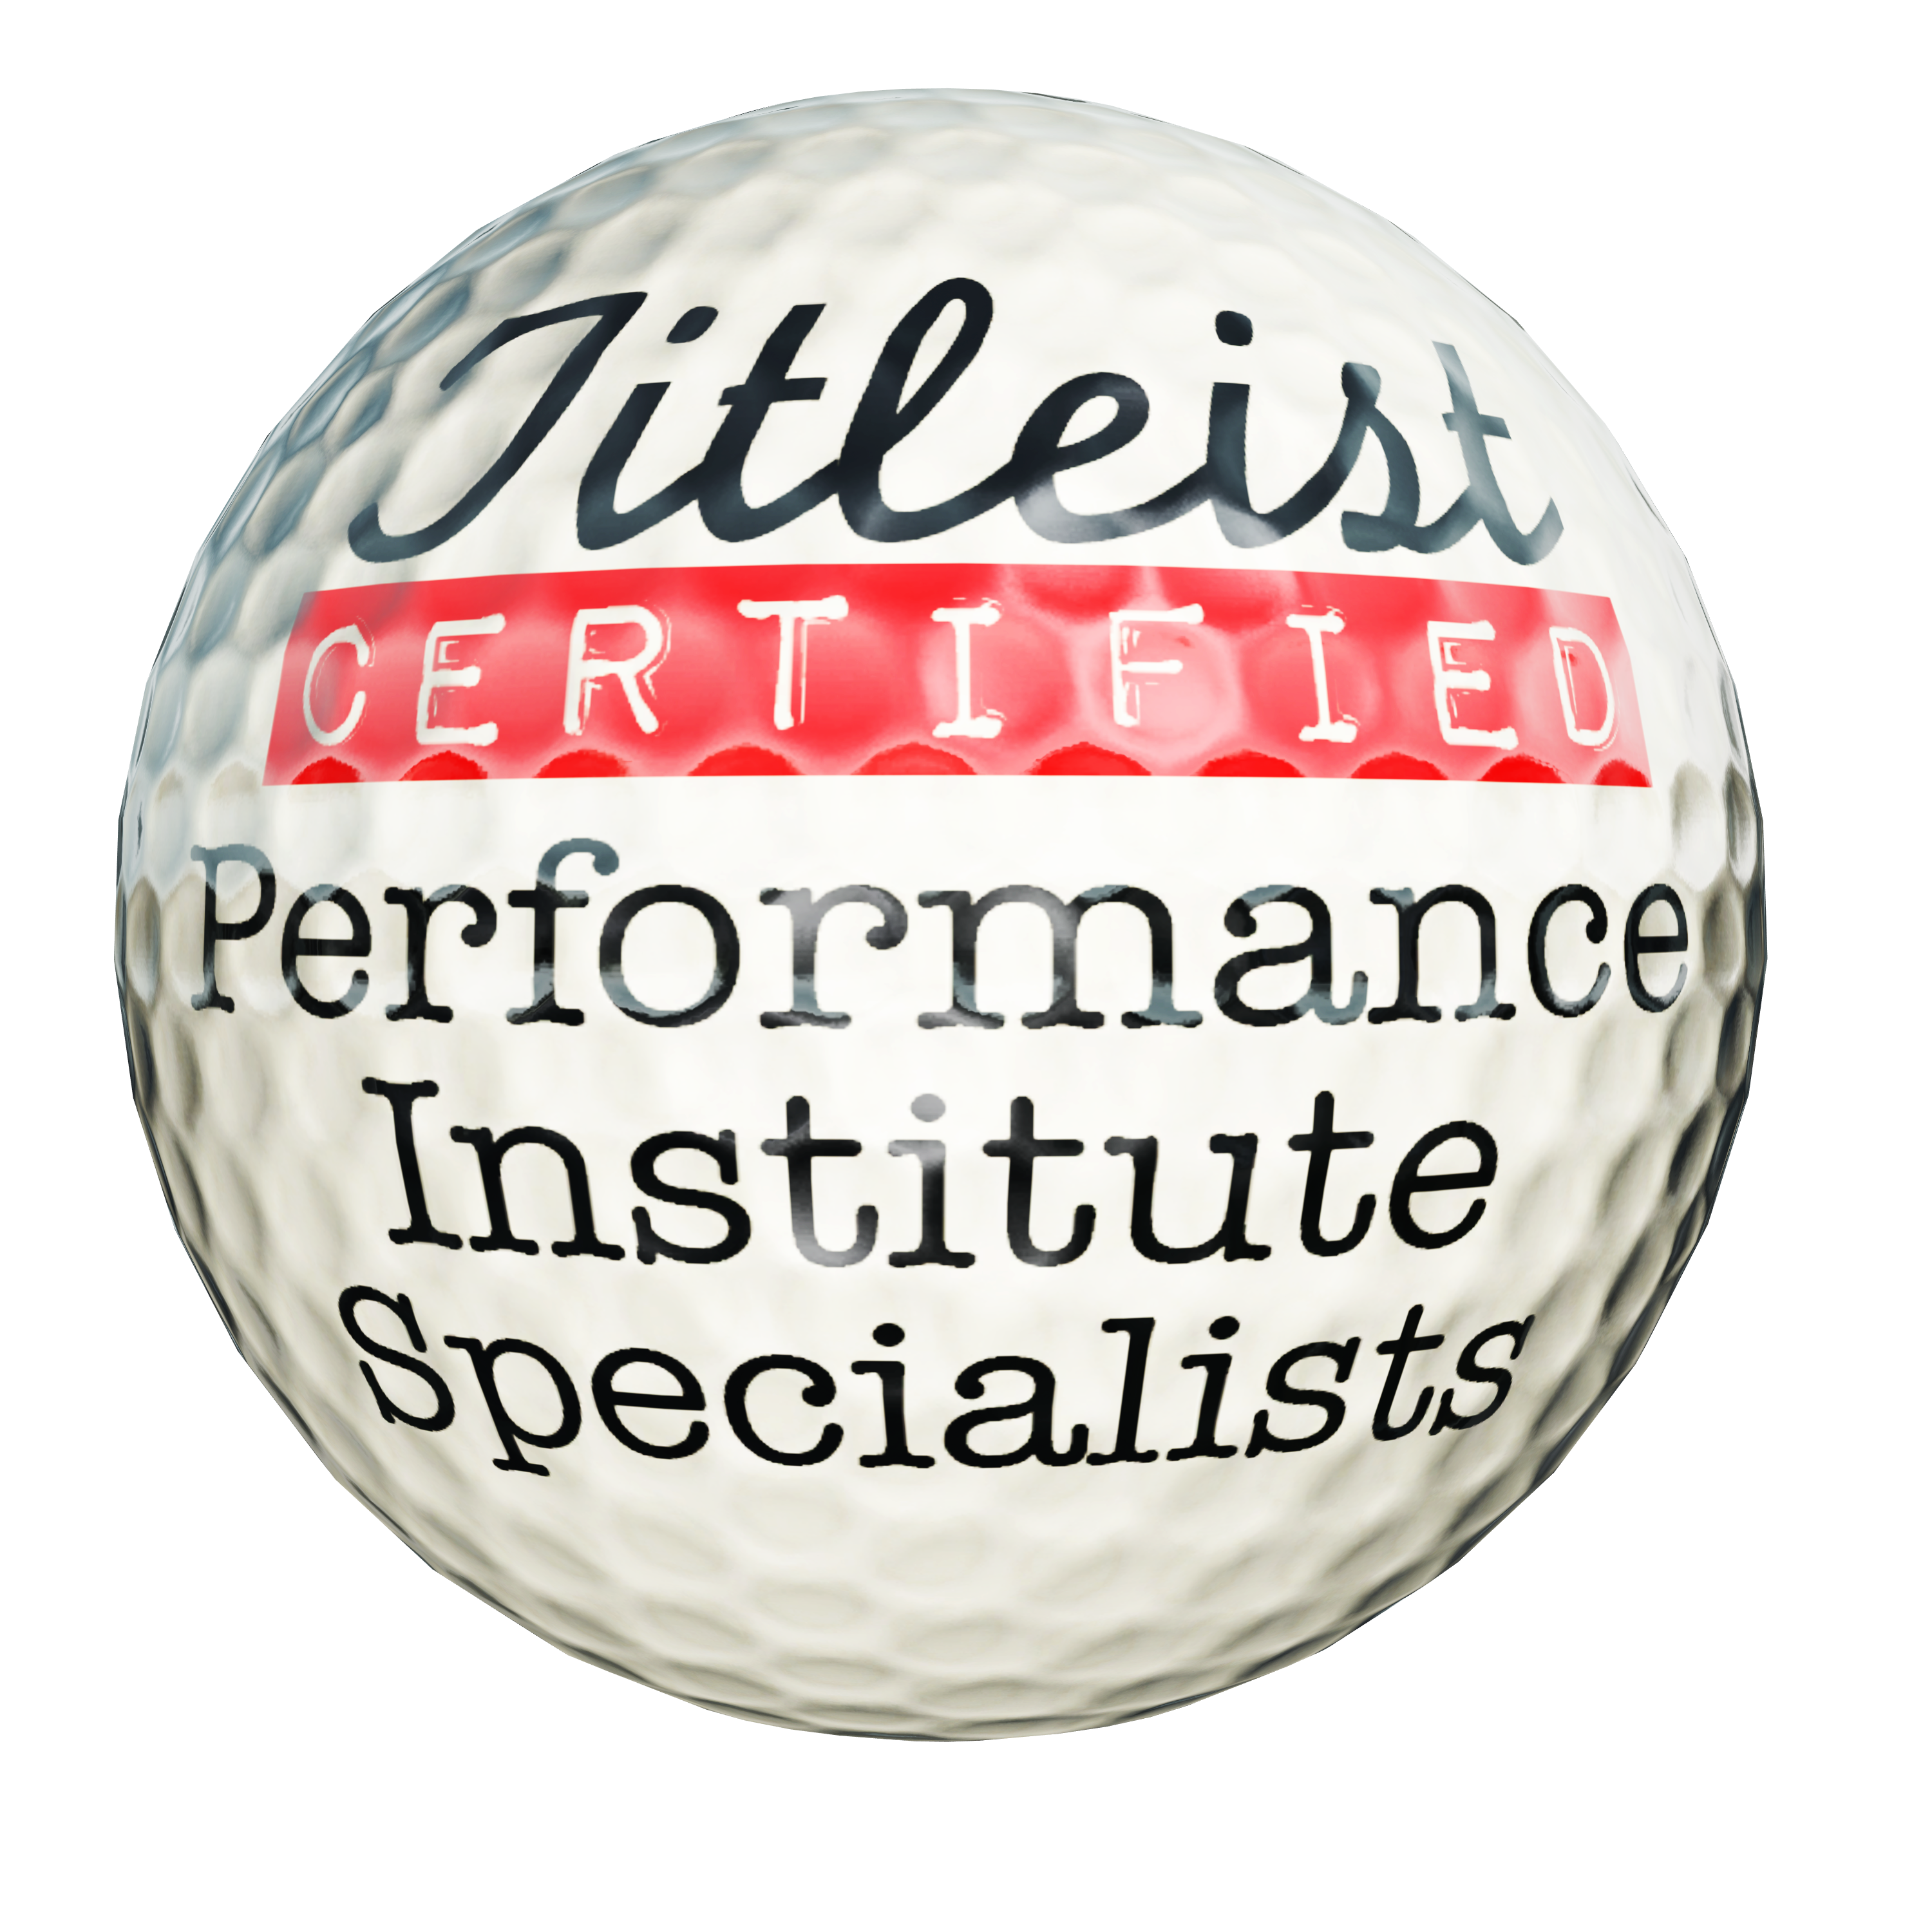 image of Titleist Certified Performance Specialists golf ball